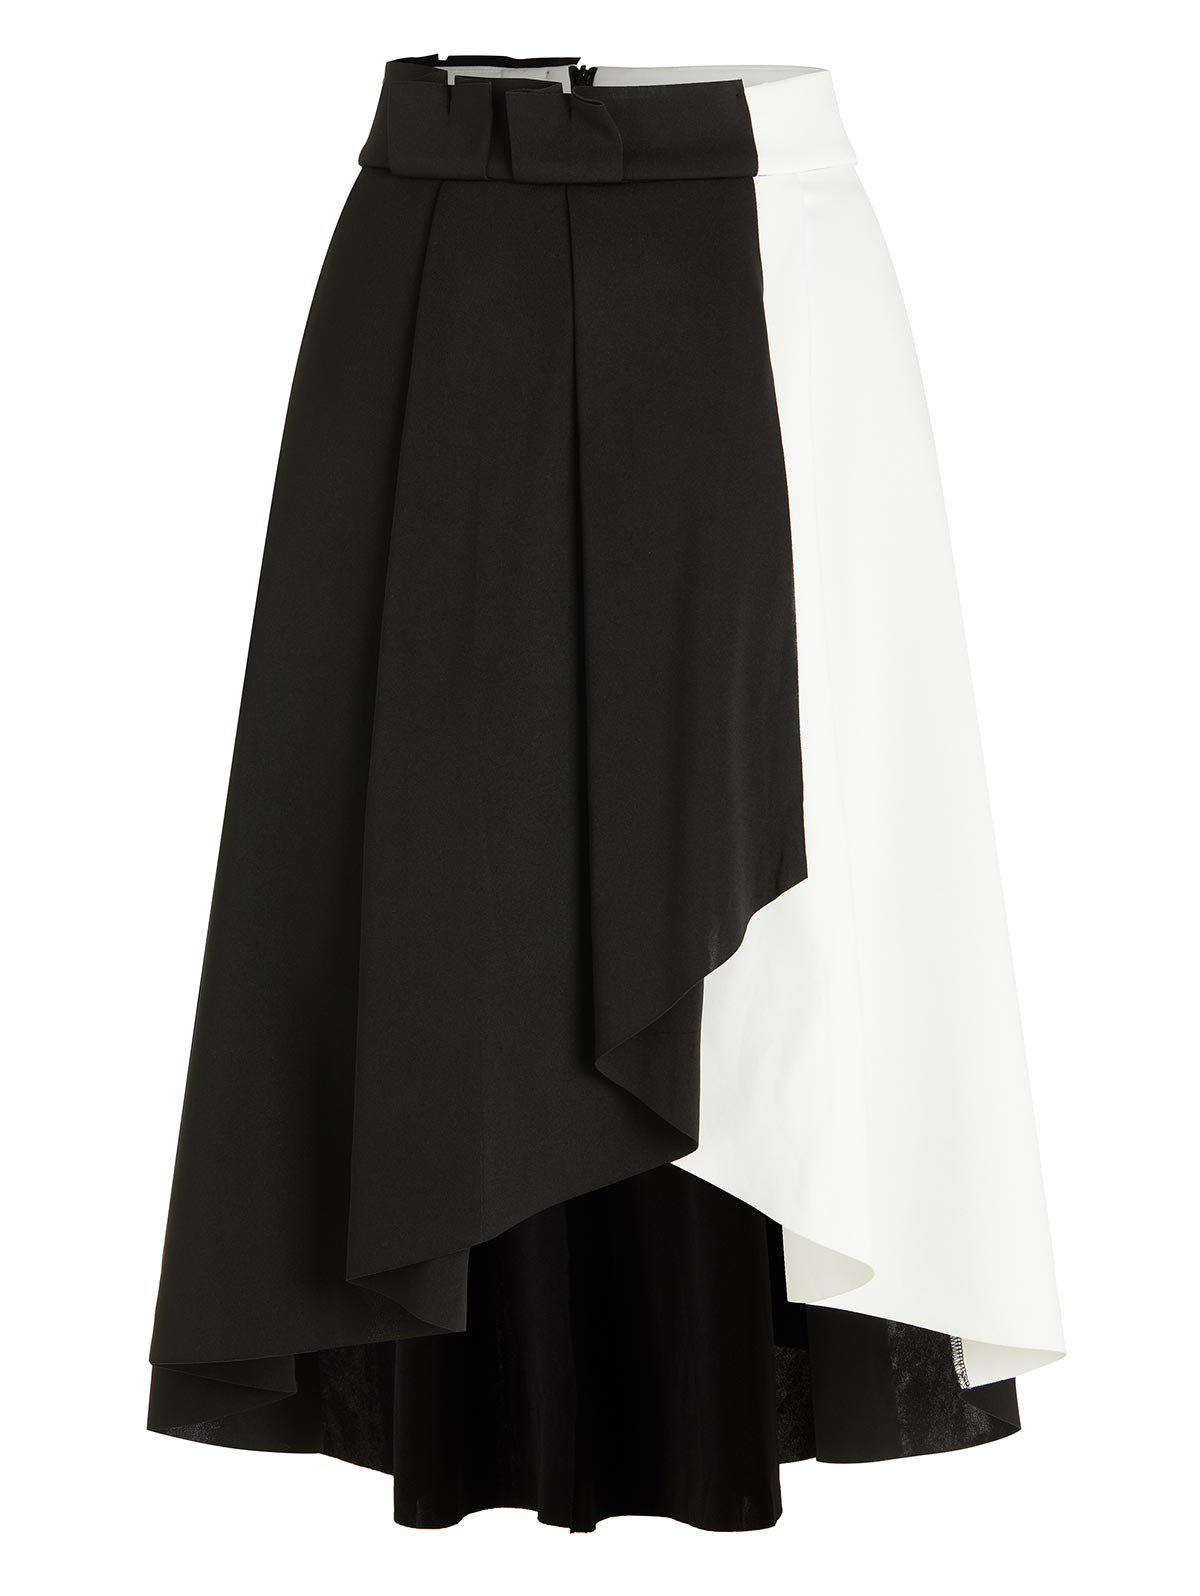 Trendy Black and White Two Tone Asymmetric A Line Midi Skirt